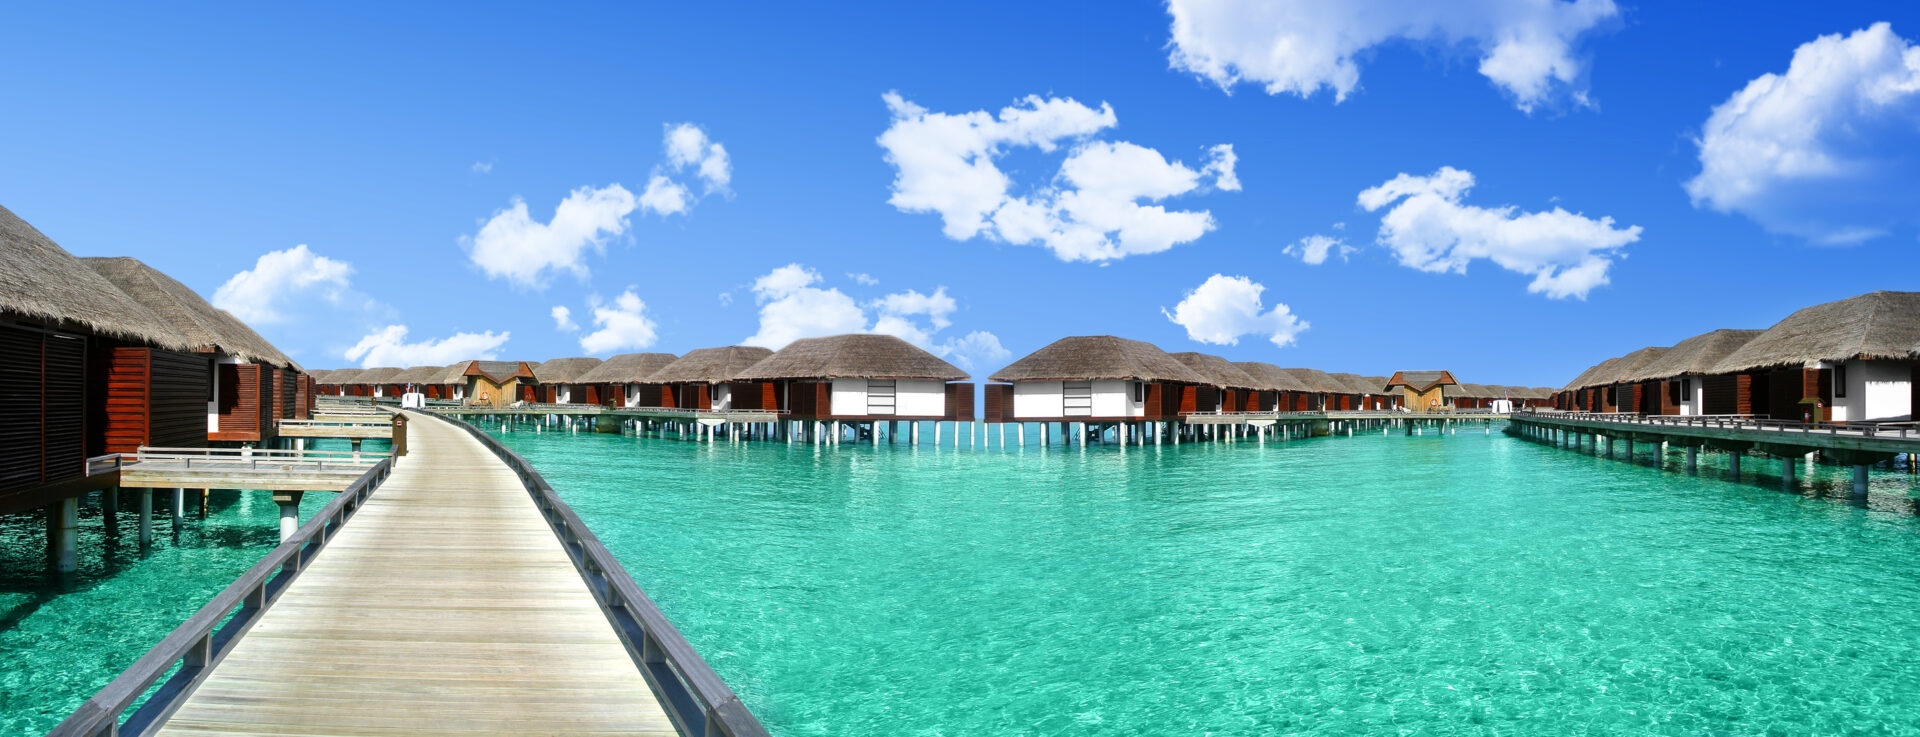 Rest in the Maldives at the beautiful cottages.